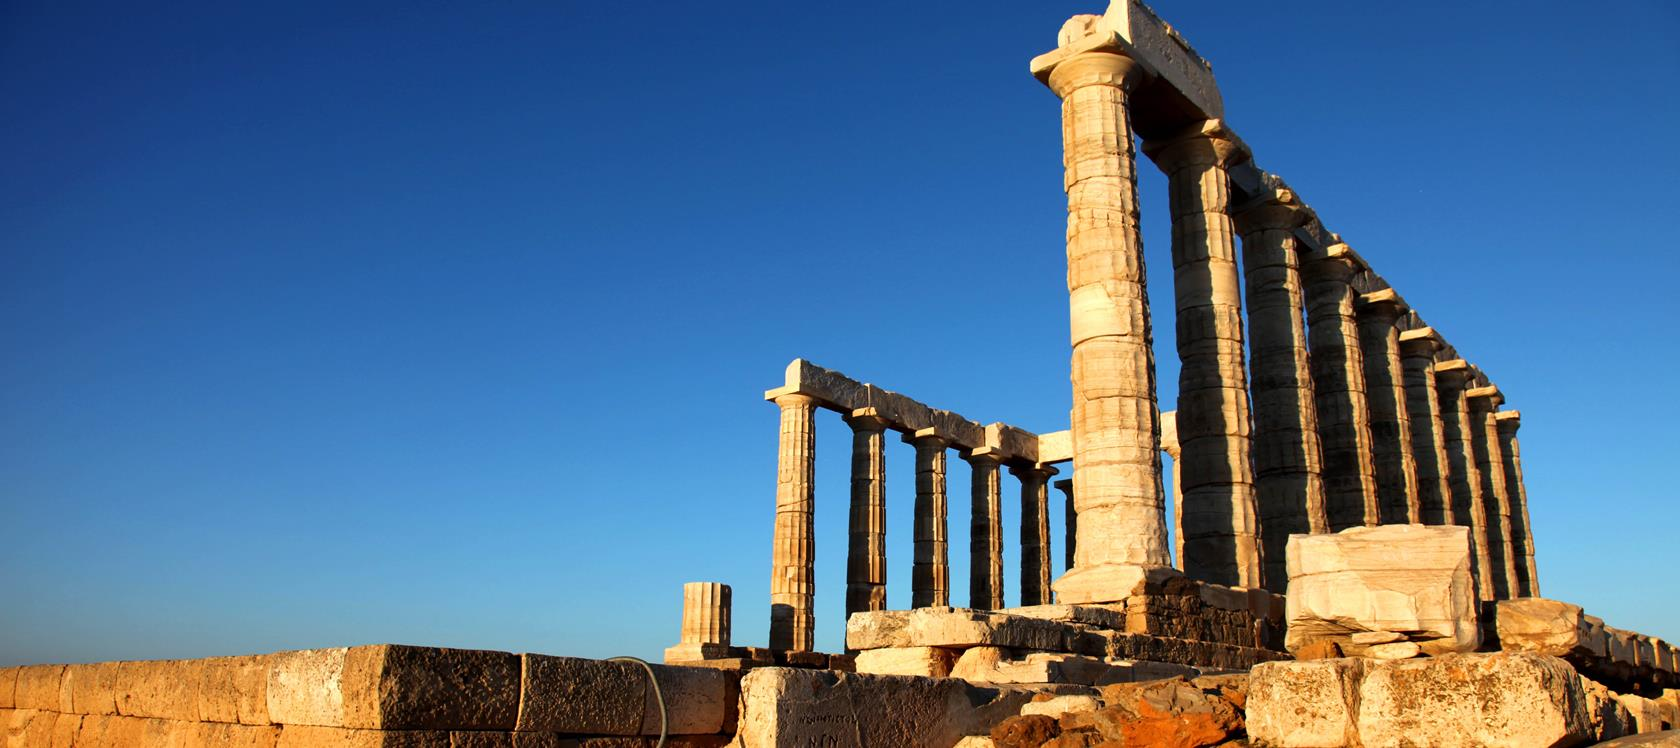 Poseidon's Temple in Sounio